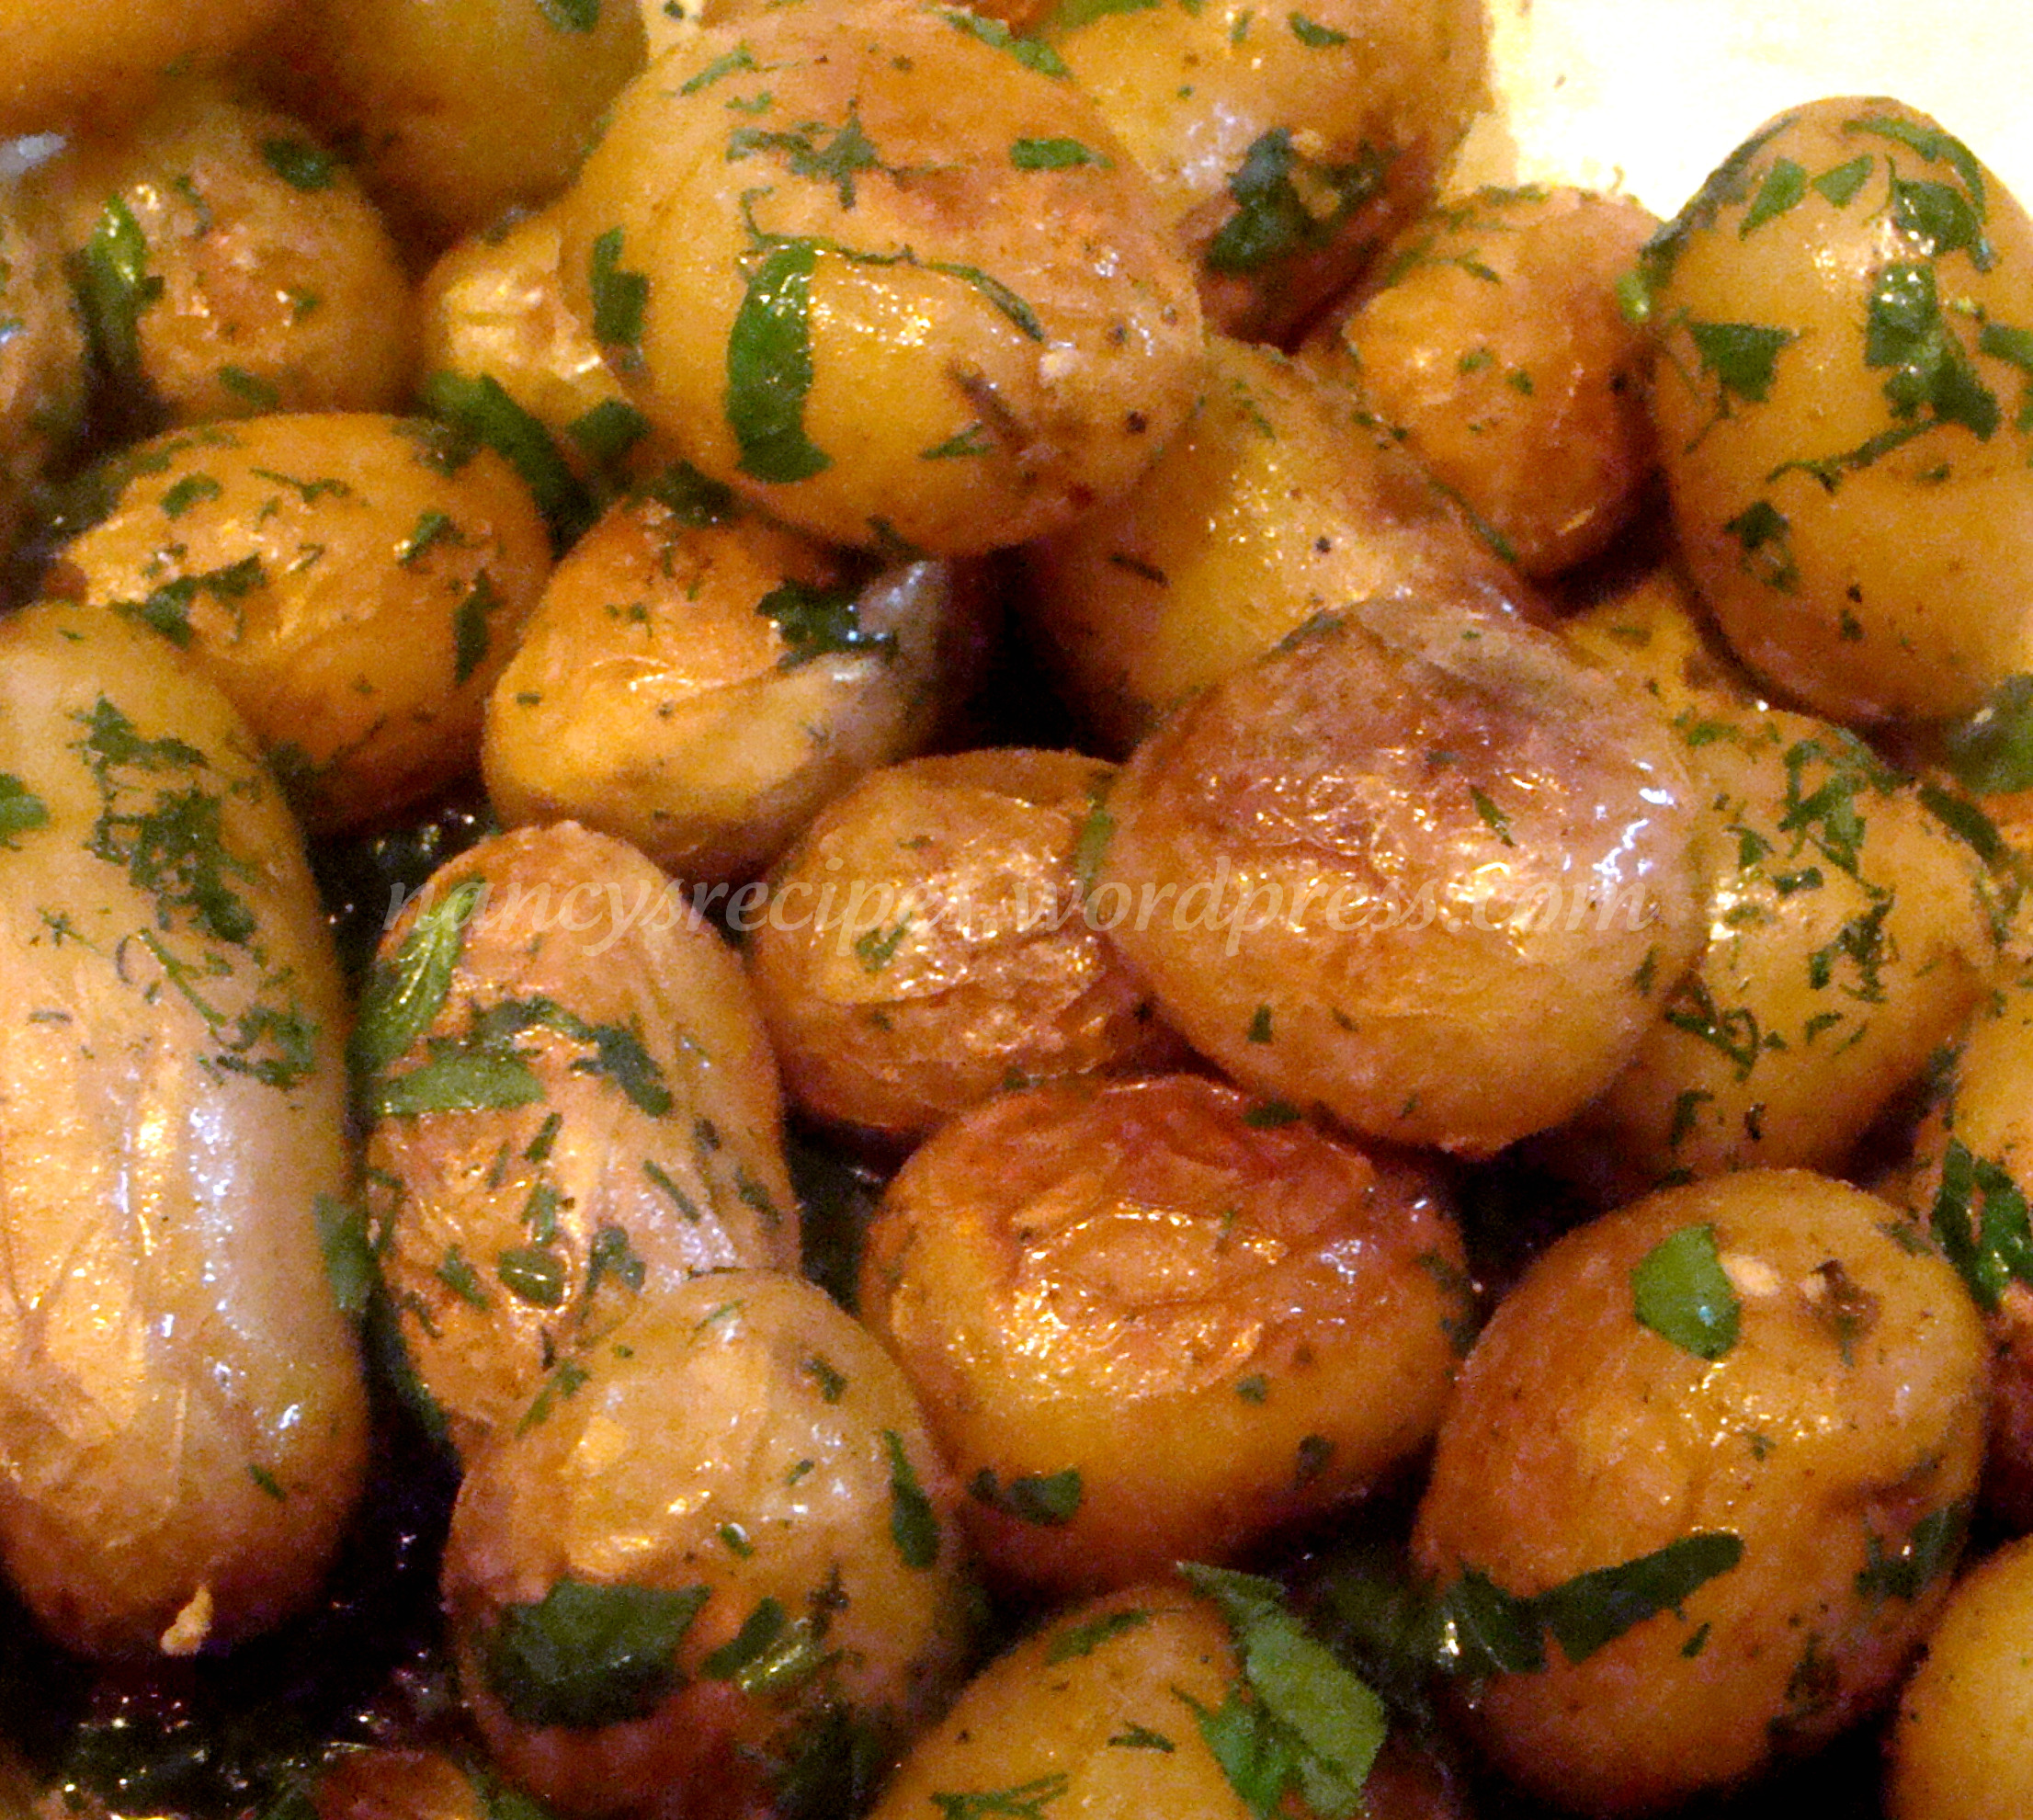 Herbed potatoes barefoot contessa a recipe a day Barefoot contessa recipes